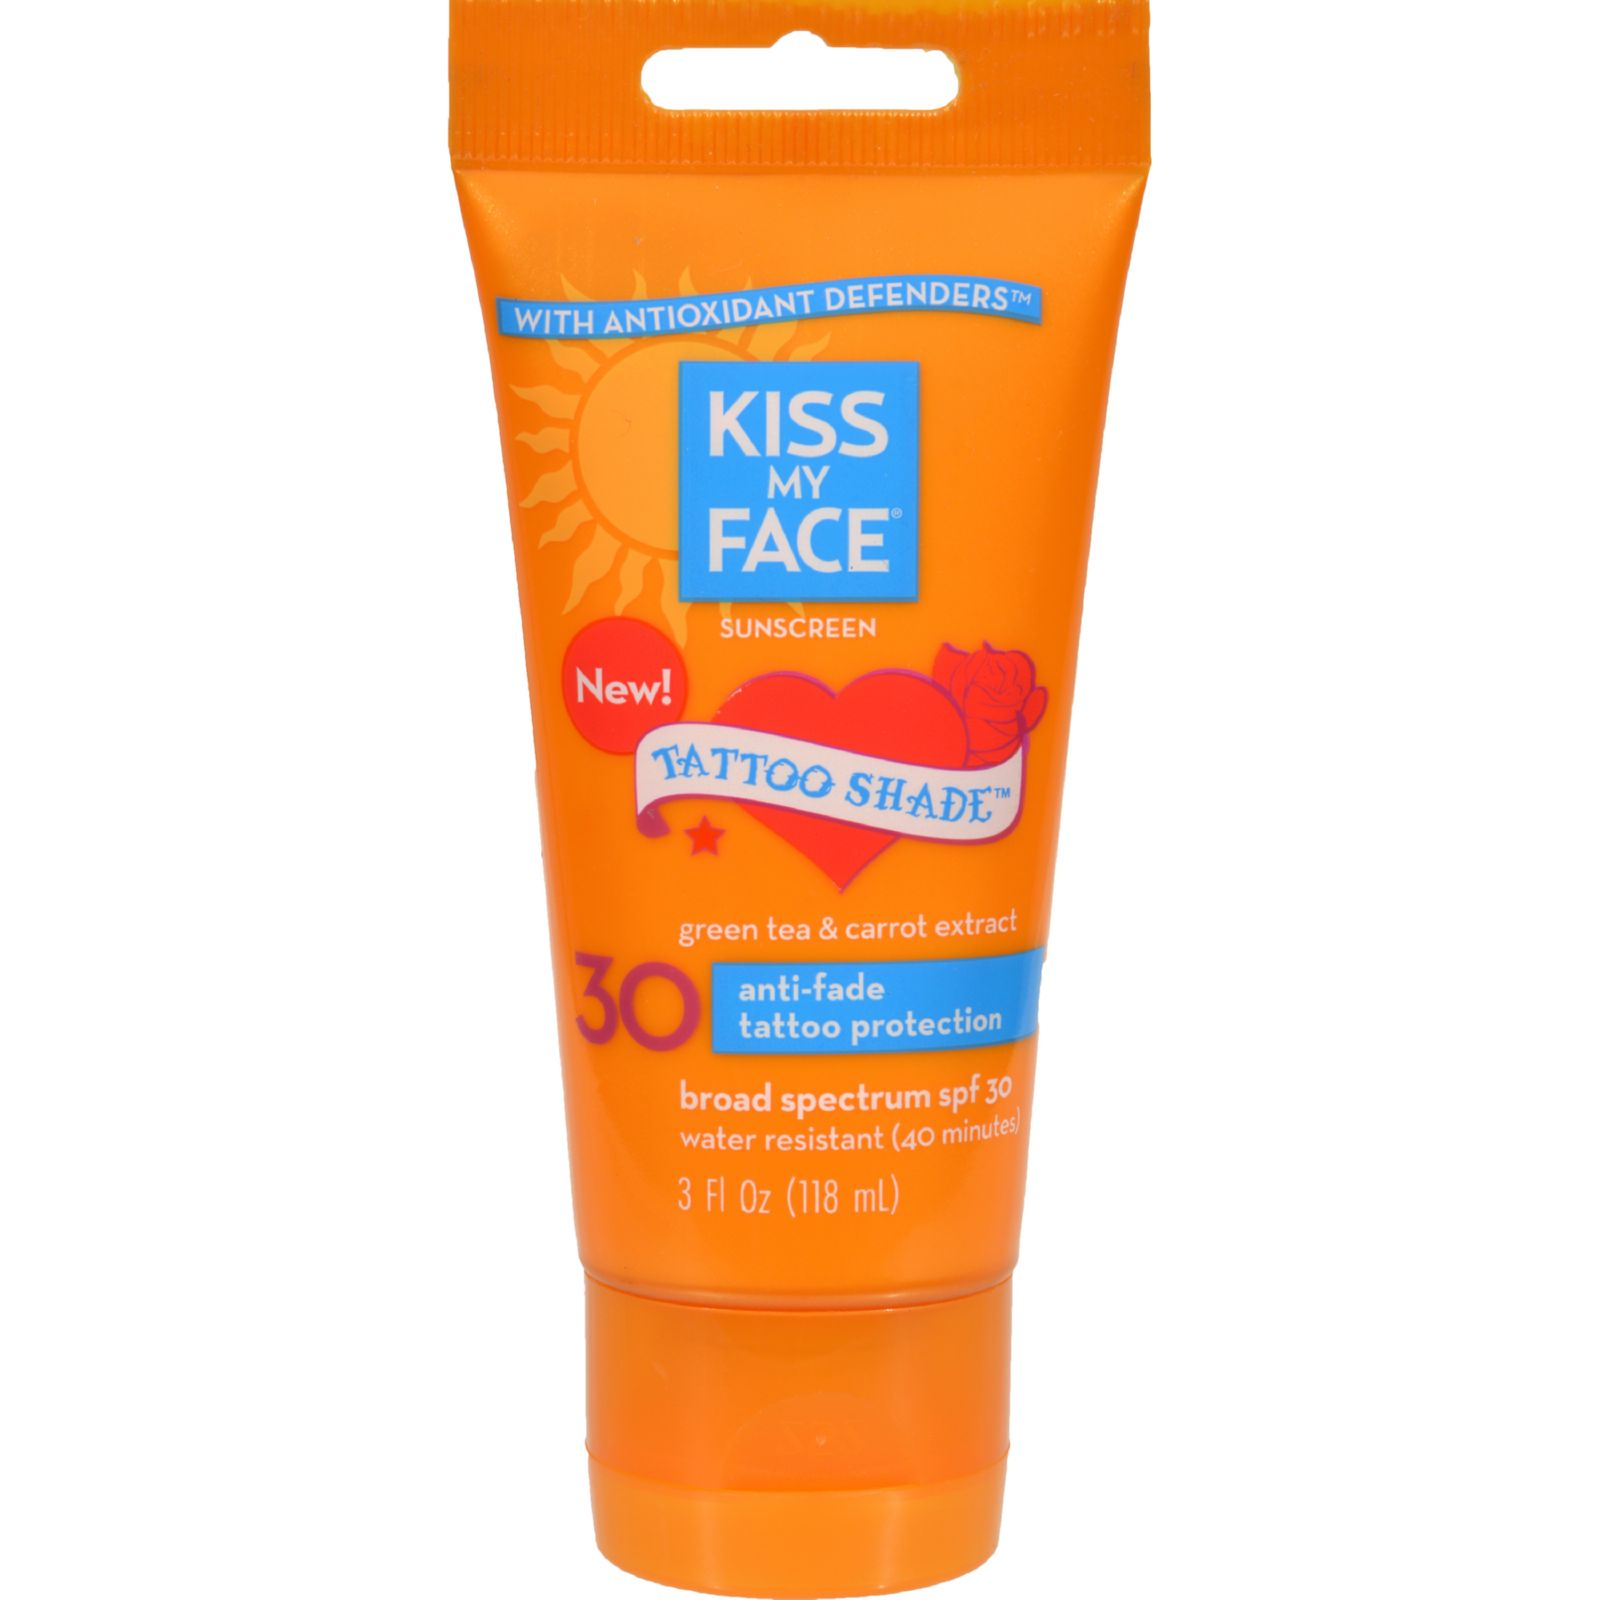 Kiss my face sunscreen tattoo shade spf 30 3 oz for Best sunblock for tattoos